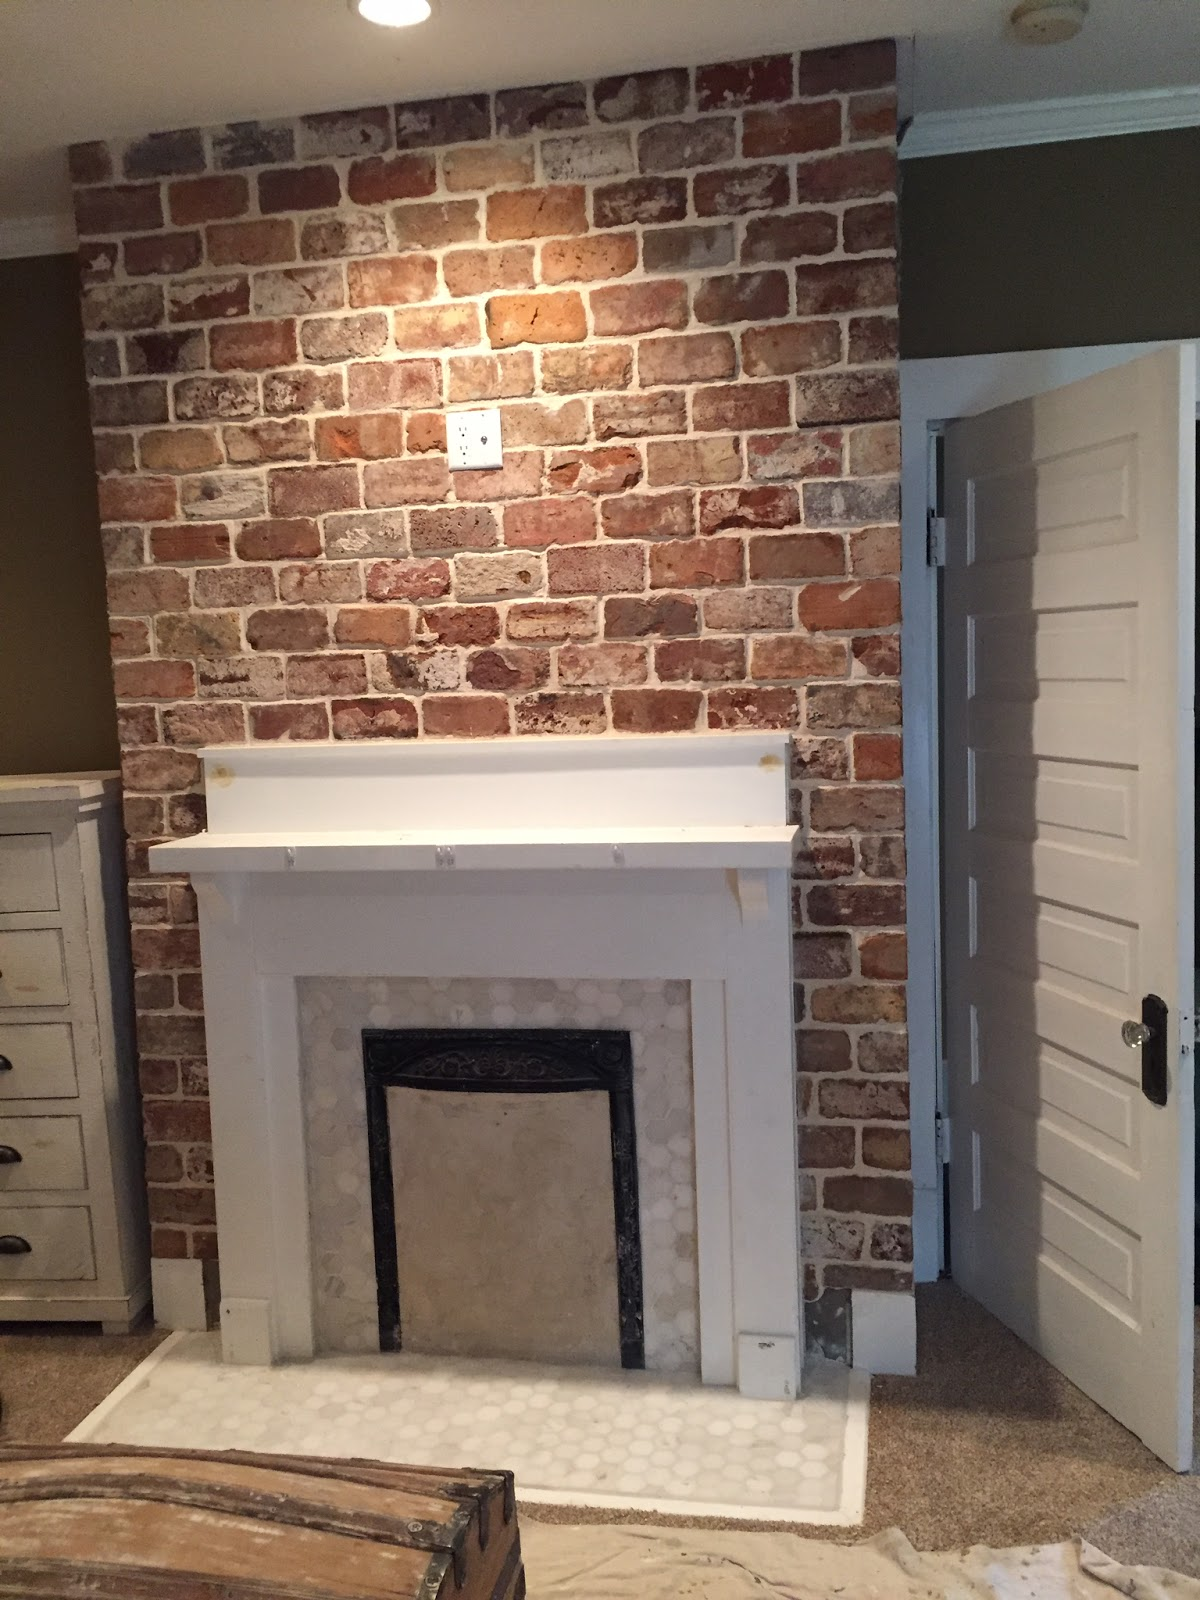 A vintage bricks fireplace installation reclaimed brick - Tile over brick fireplace ...